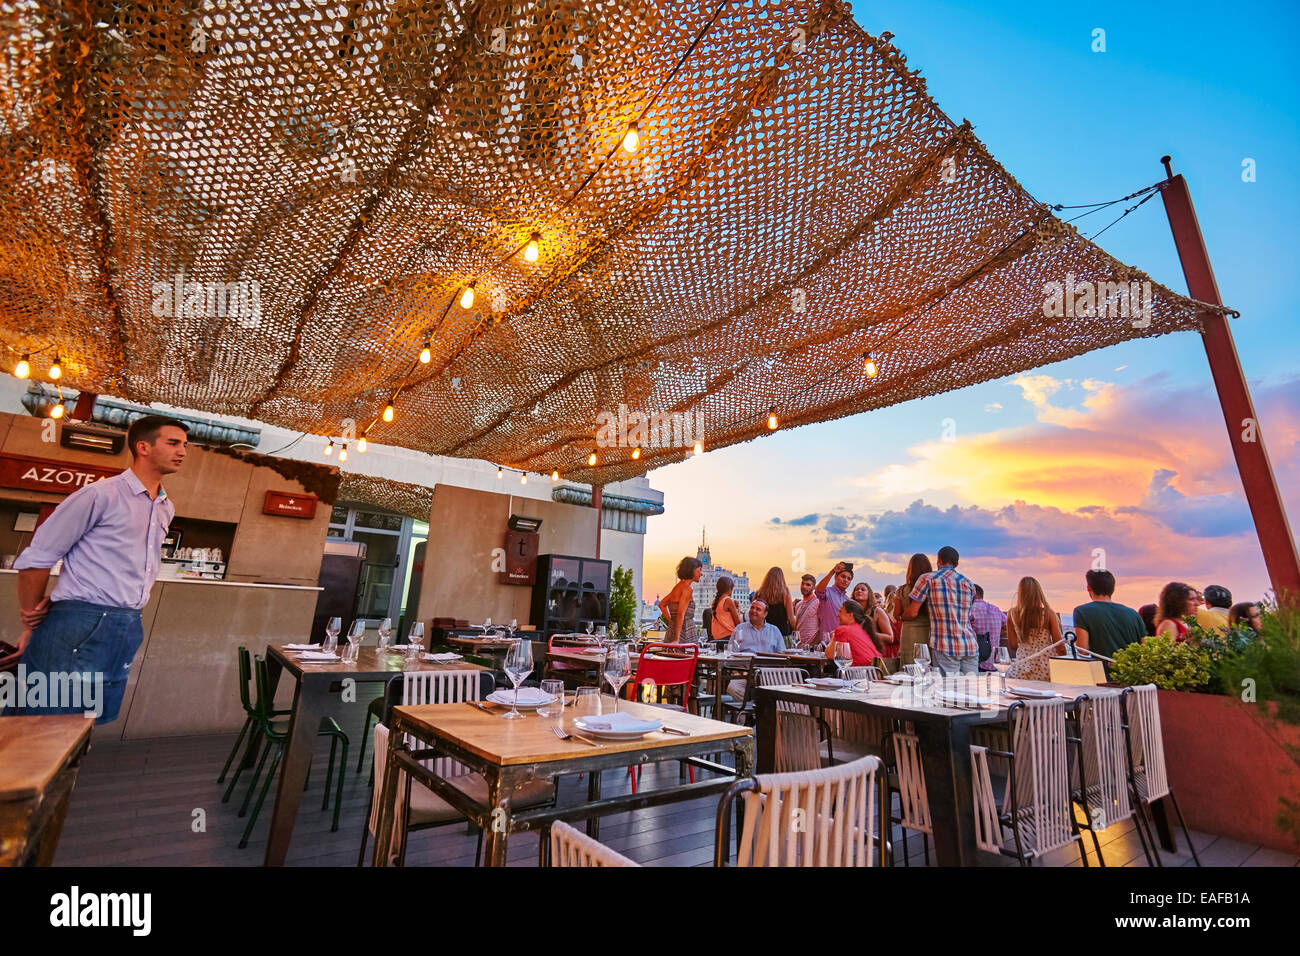 Restaurant at The Circulo de Bellas artes cultural center rooftop terrace. Madrid. Spain - Stock Image